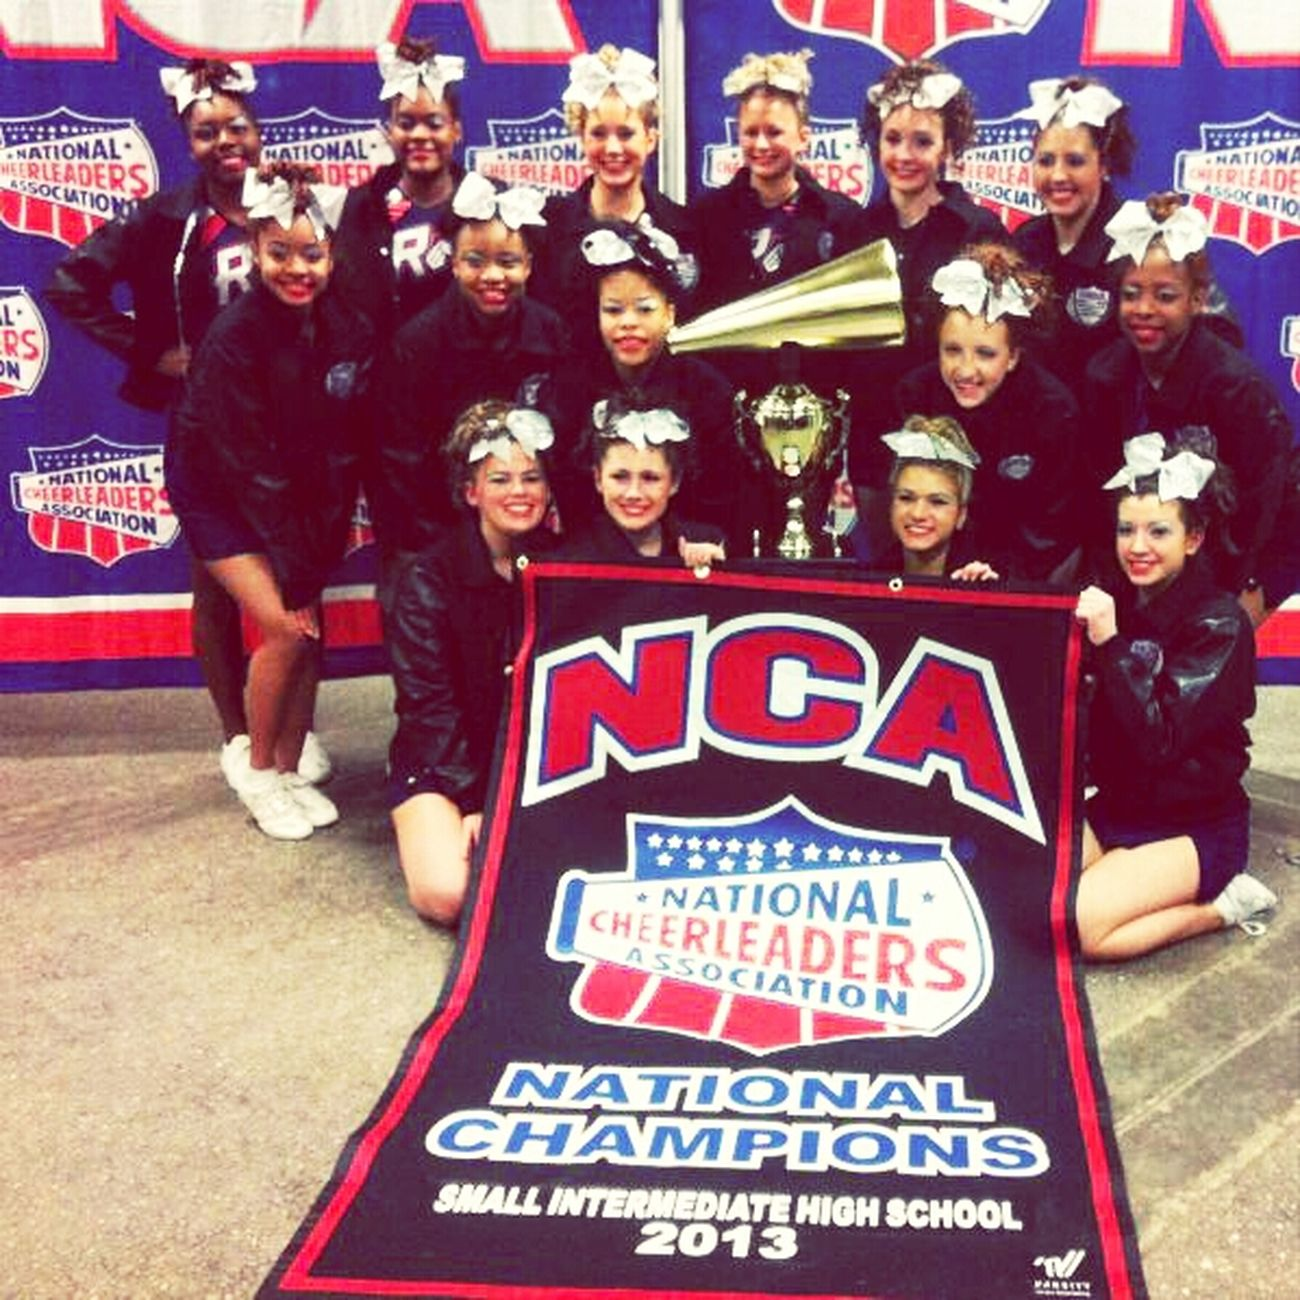 NATIONAL CHAMPS